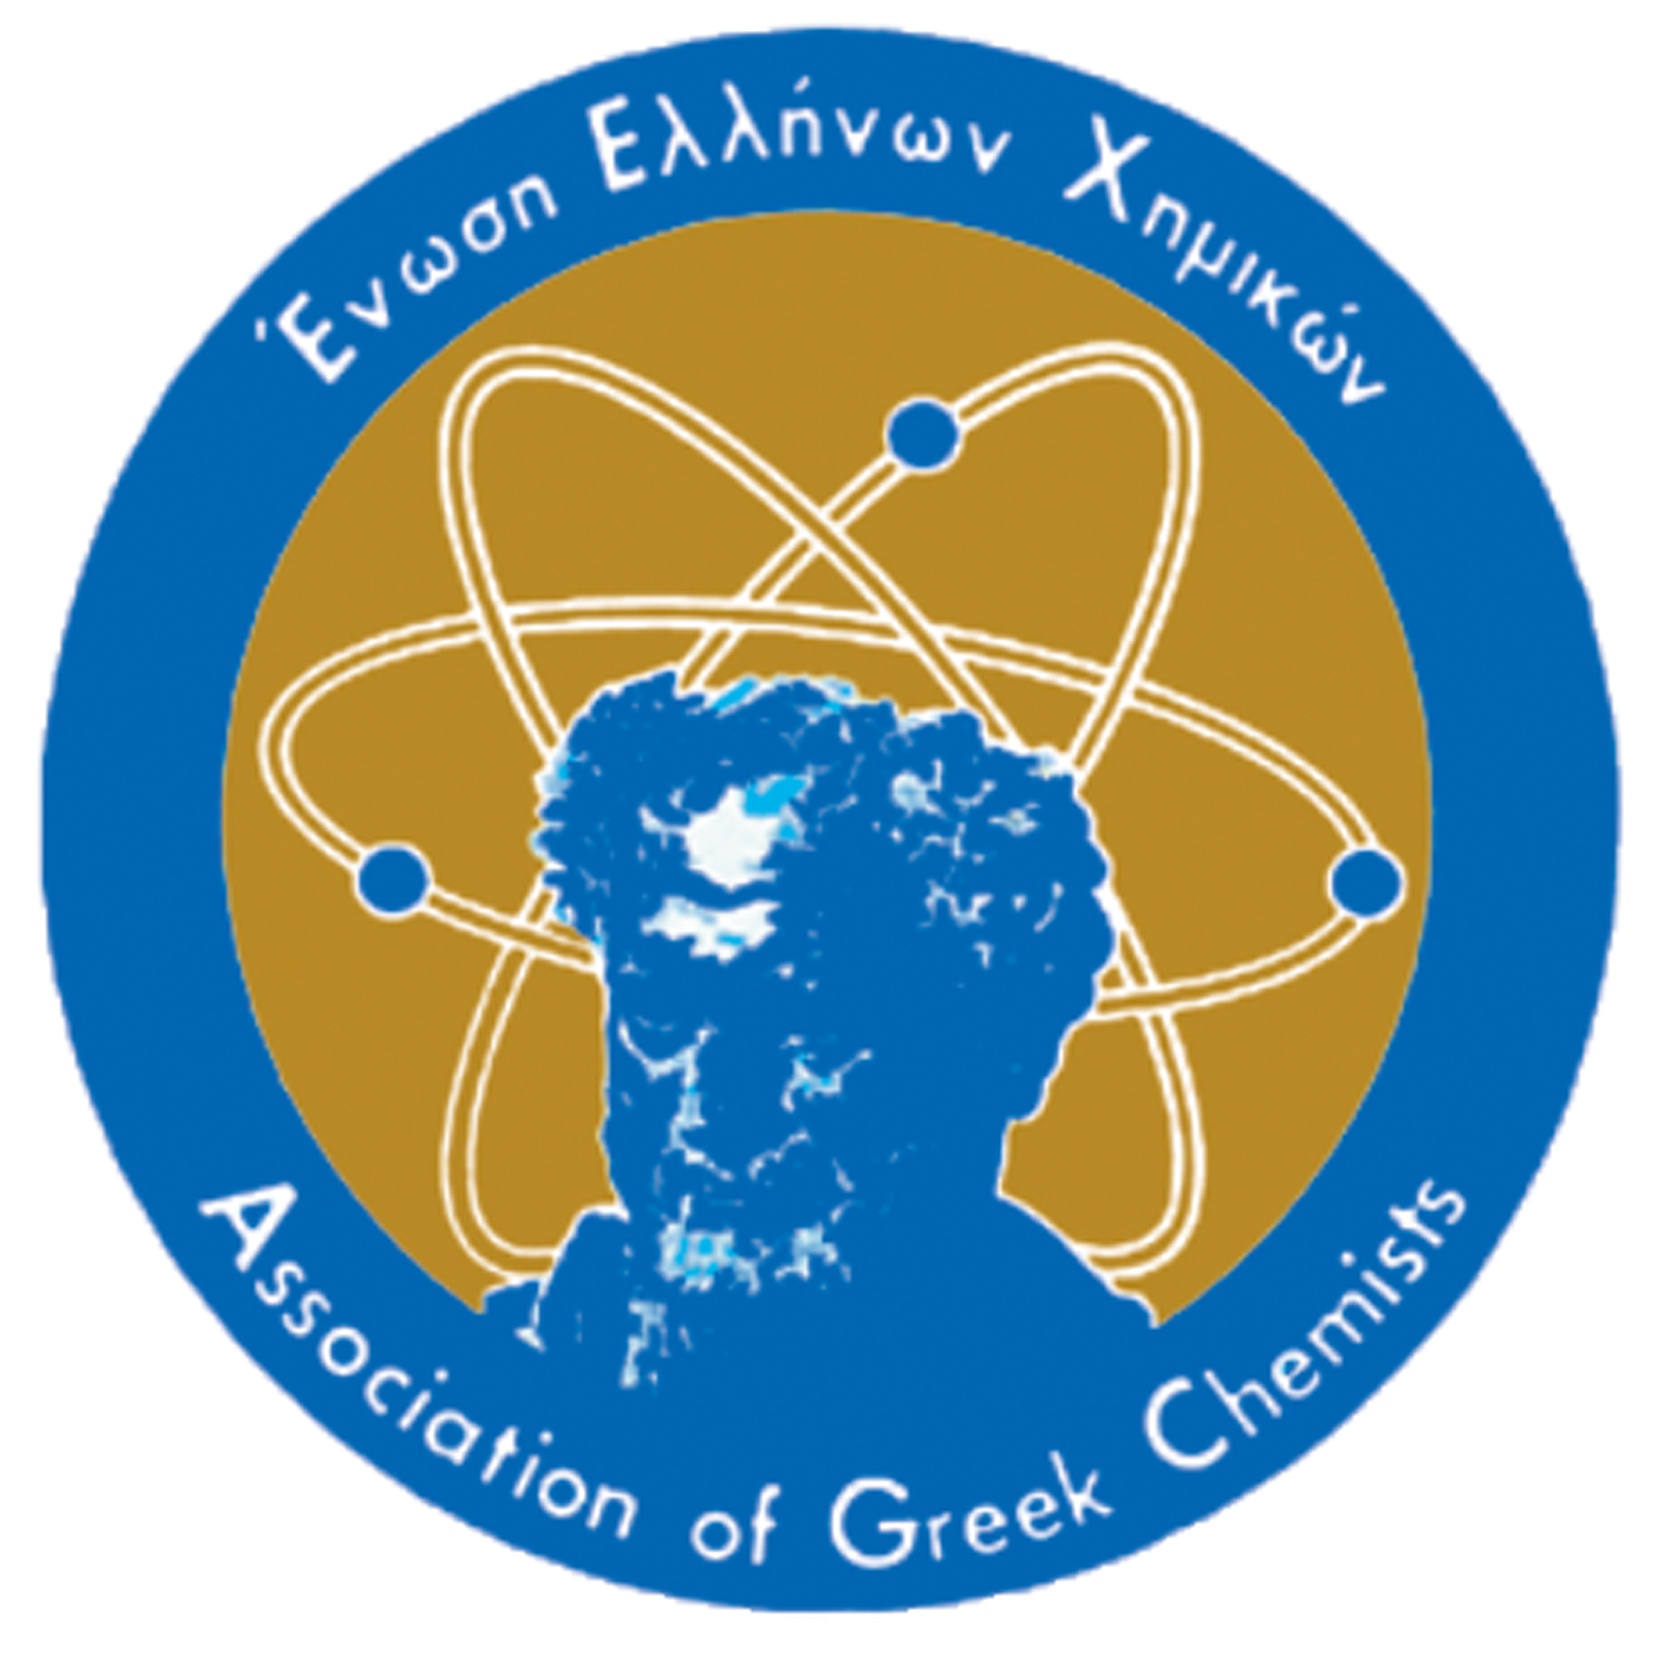 Union of Greek Chemists logo